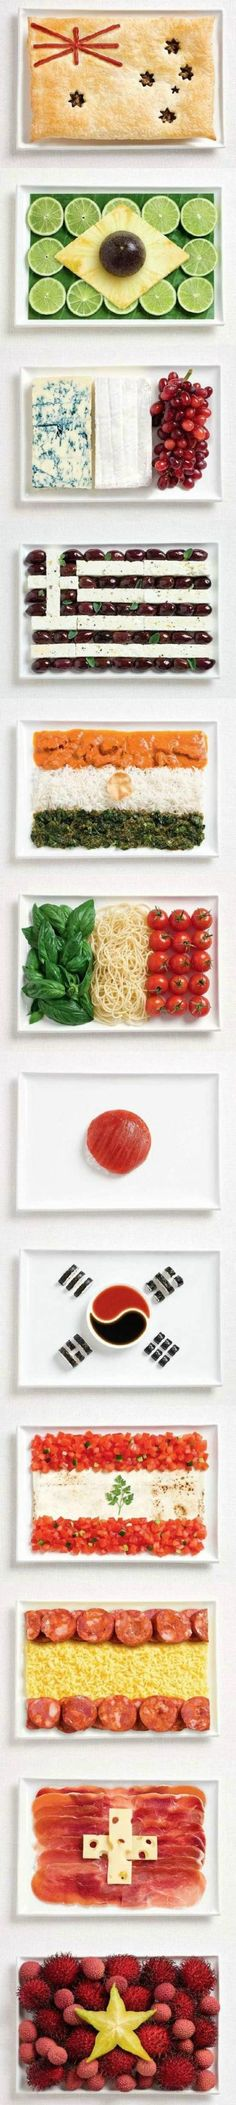 So so so cool...countries' flags made from food!